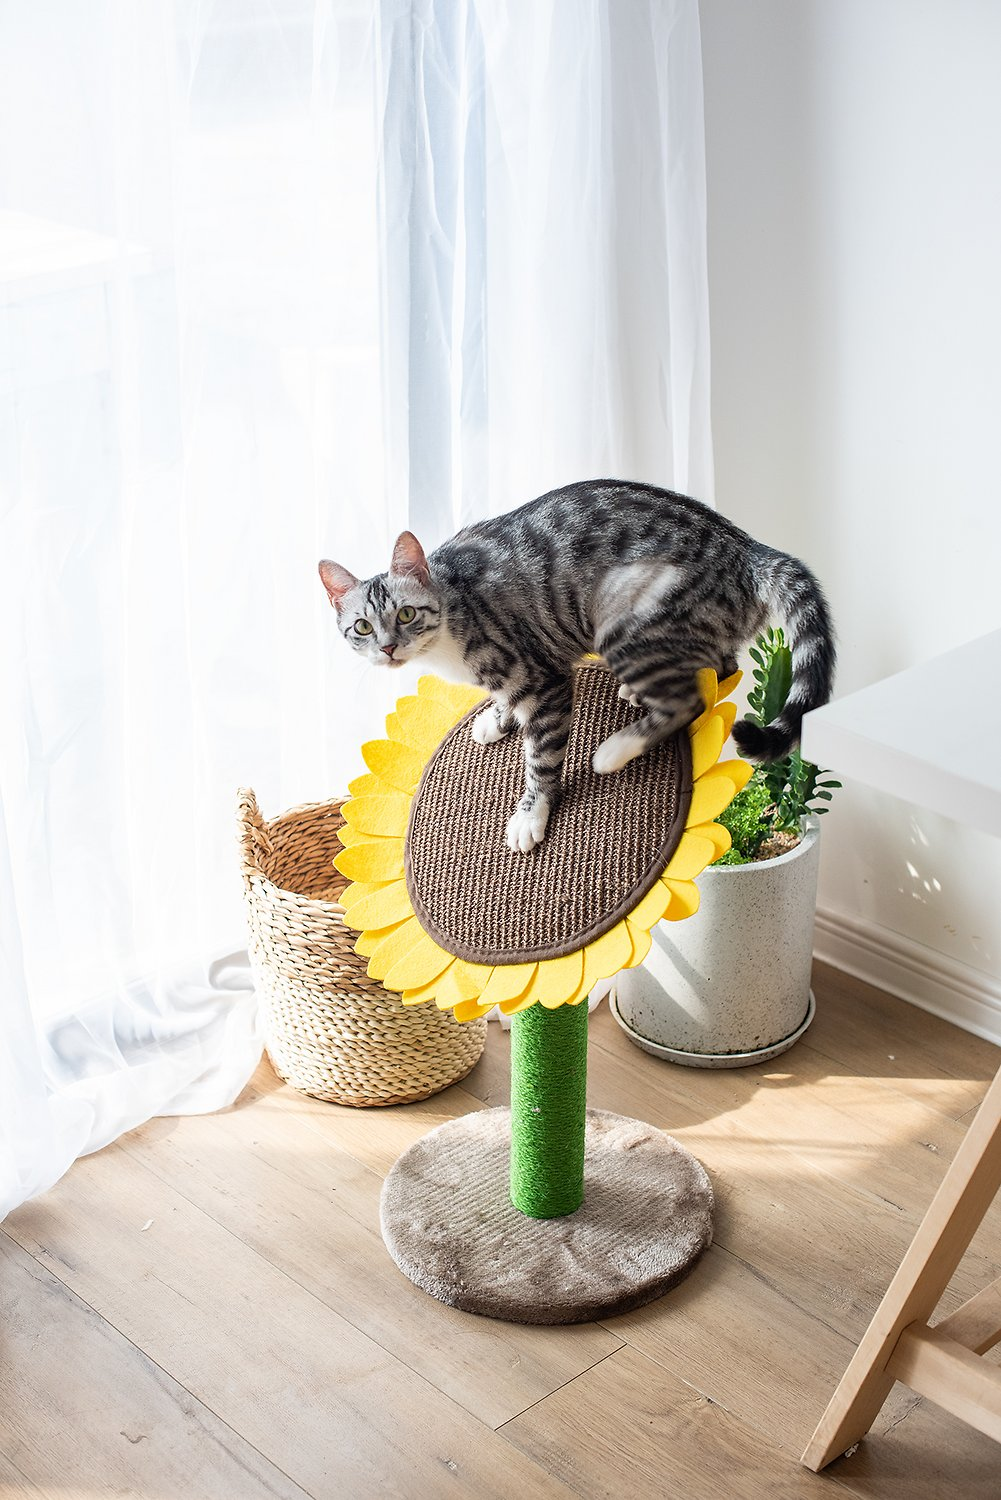 GiftParty Cat Scratching Post 18x12 Inch Sunflower Durable Natural Sisal Cute Board Scratcher Cat Furniture Interactive Activity Pad Toy for Kitten